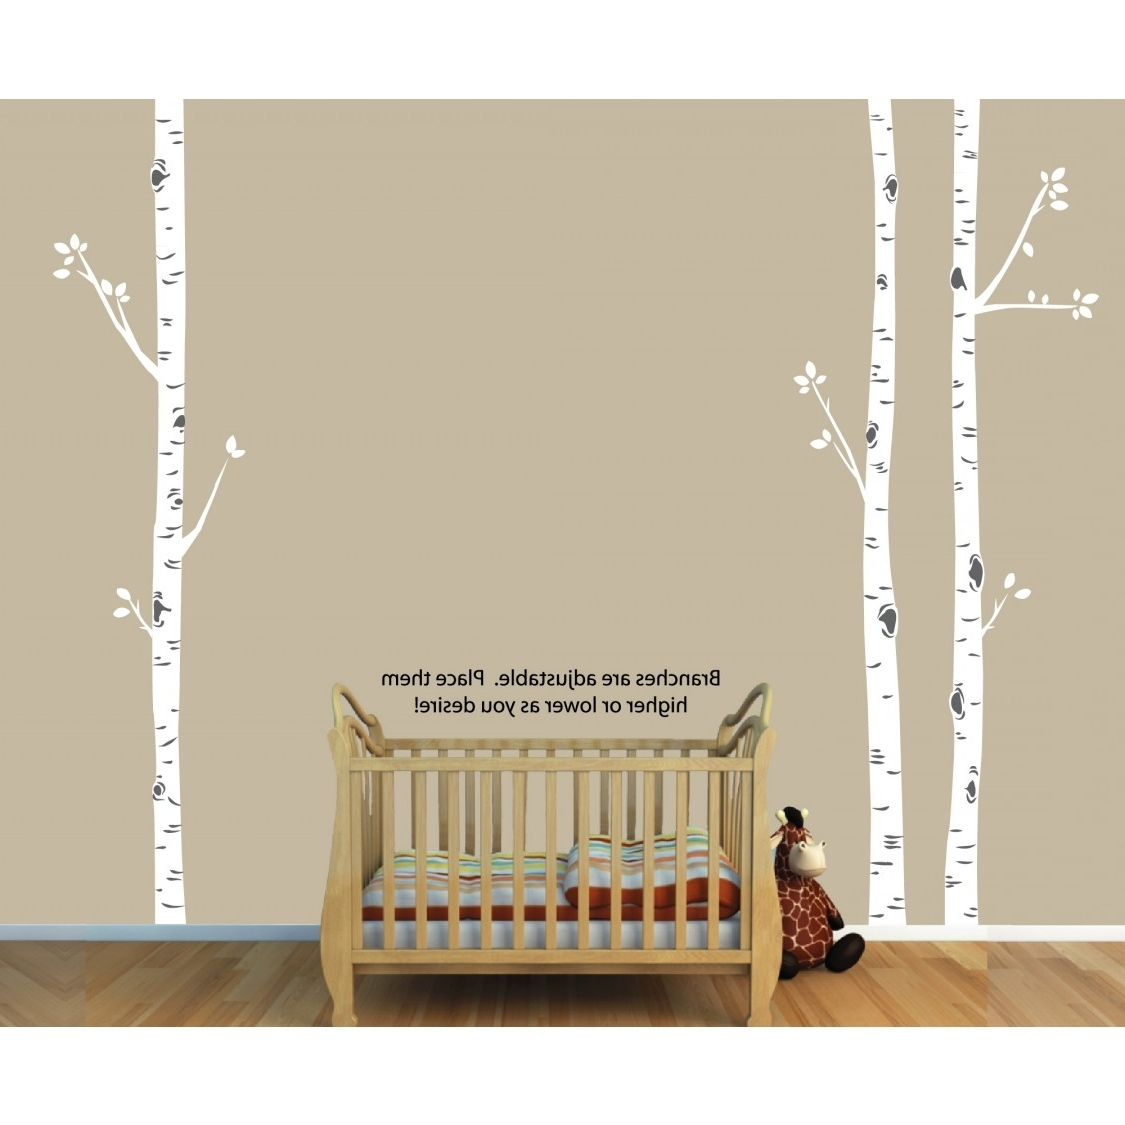 Birch Tree Wall Art In Famous Birch Tree Wall Art And Birch Tree Decals For Nursery For Girls (View 10 of 20)